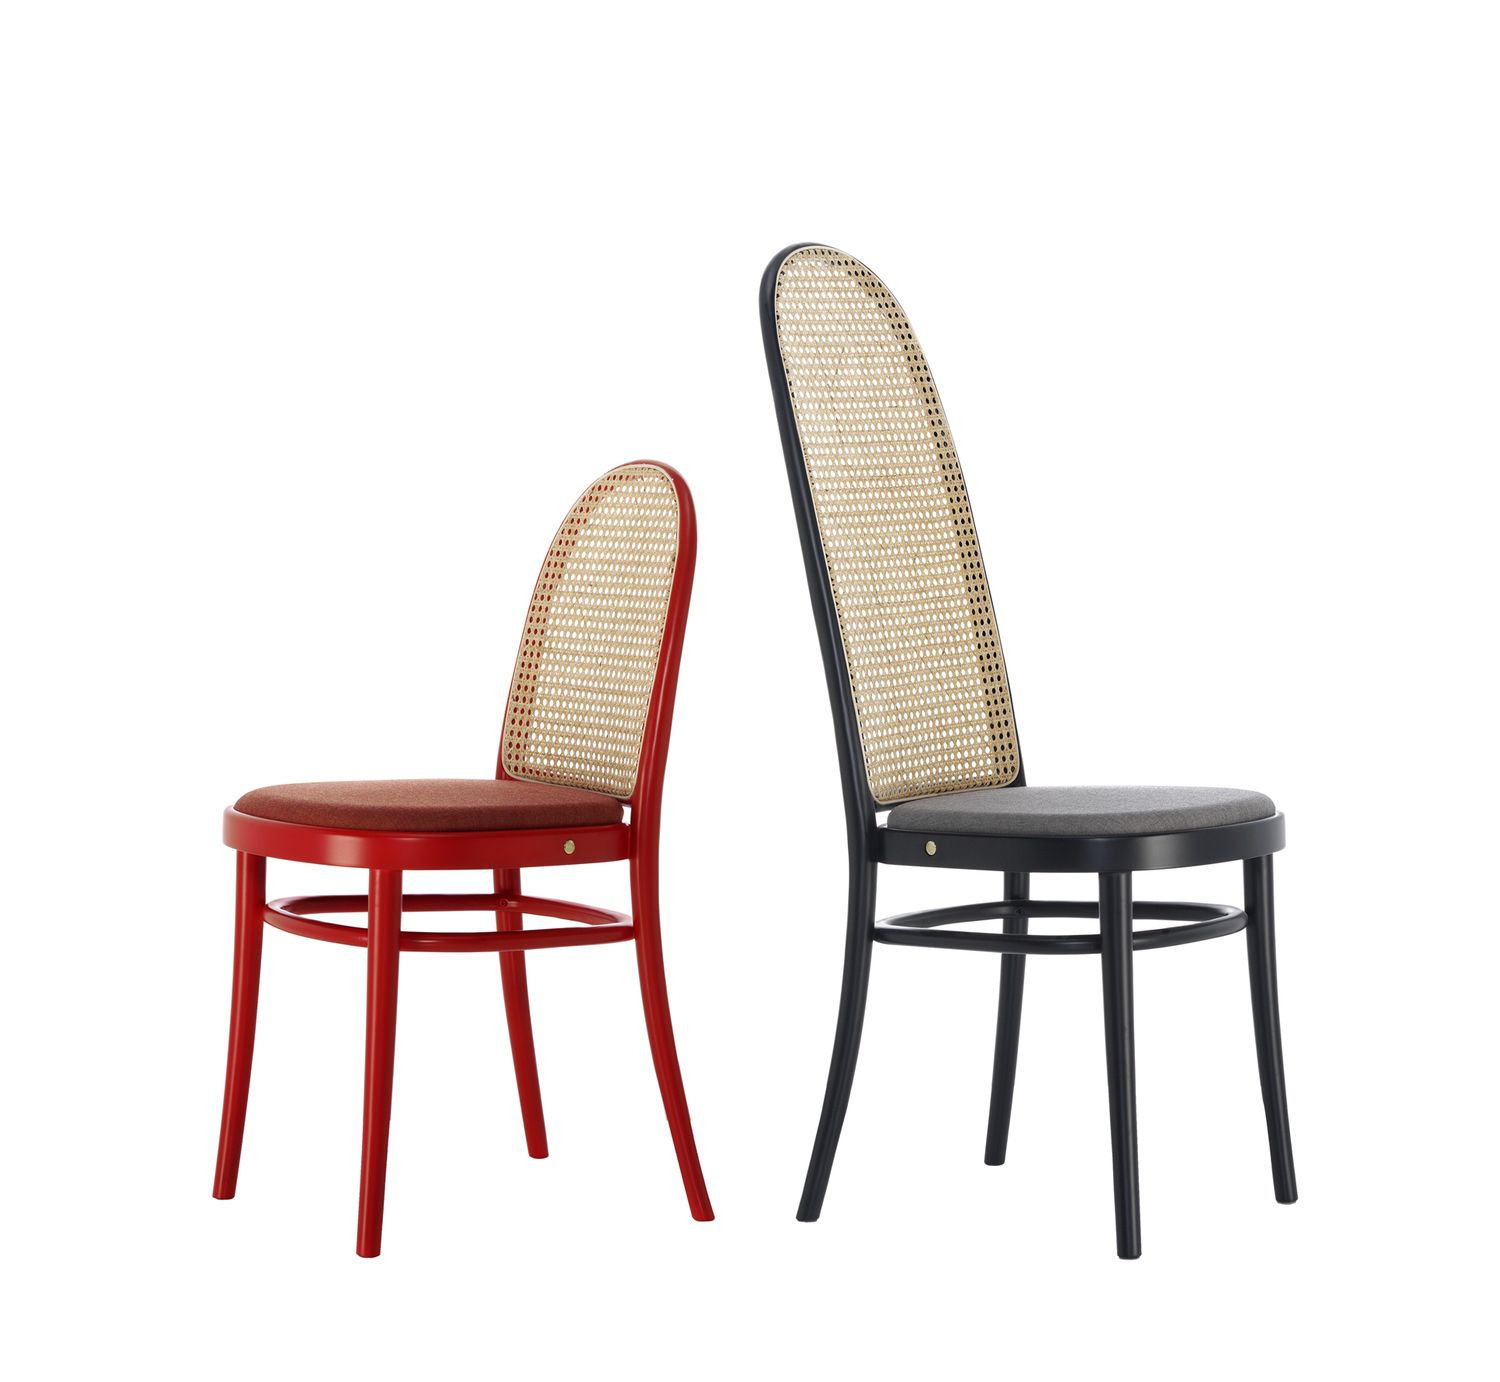 Pinmado Reid On Chairs   Armchair Furniture, Chair Pertaining To Hutchinsen Polyester Blend Armchairs (View 12 of 15)